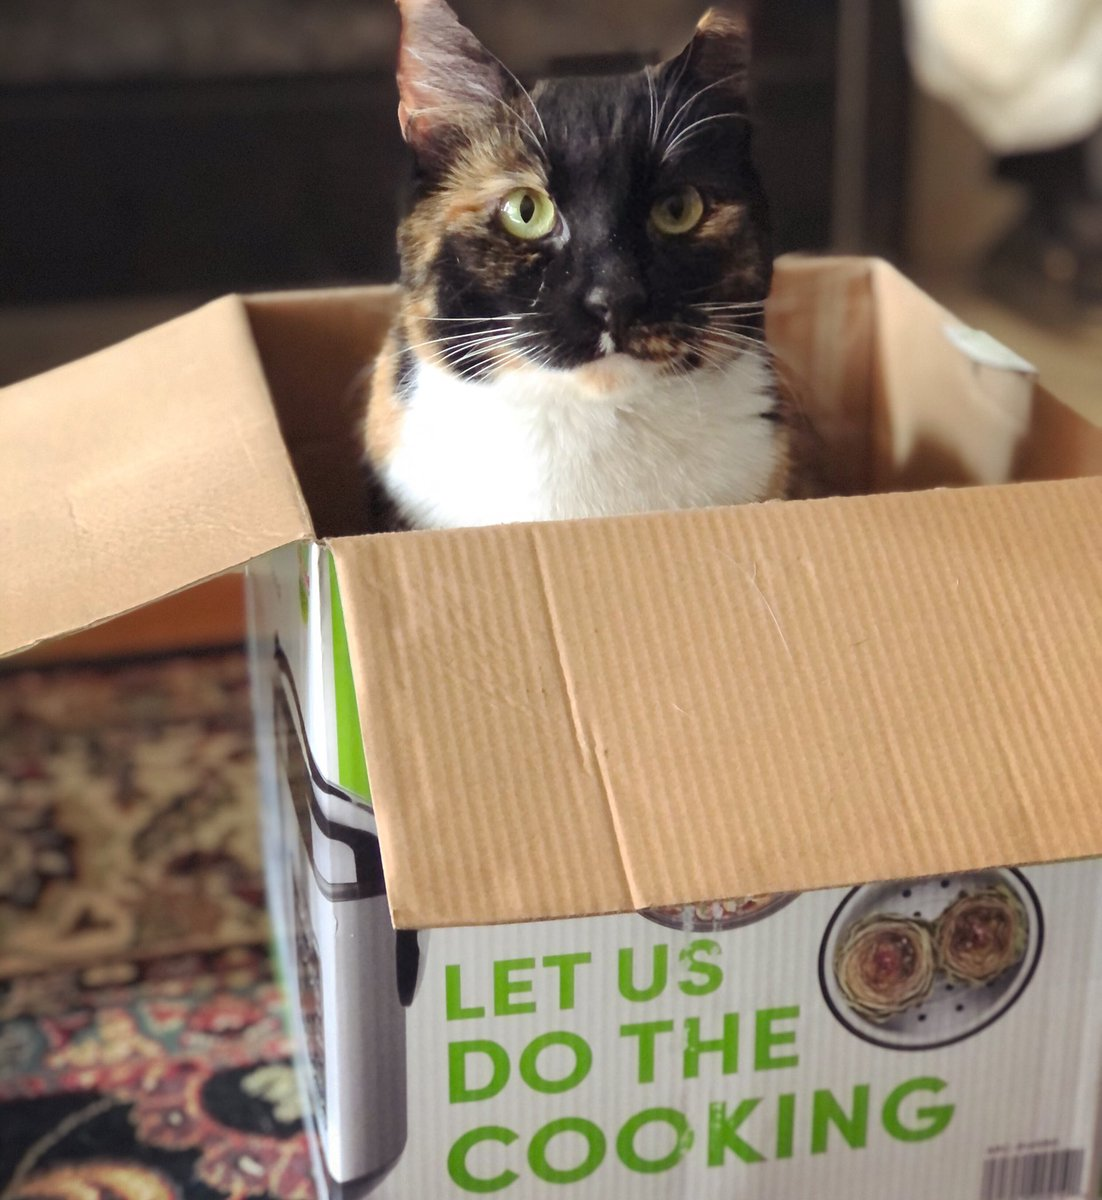 Happy Caturday! Chef Nitro would like to remind you that the initial step in any good recipe is to first ... sit in the box 😂 . #caturday #catlover #catlovers #catitude #neko #gato #tortiseshellcat #tortie #tortitude #tortieproblems #catproblems #catoftheday #catlife #rescuepet